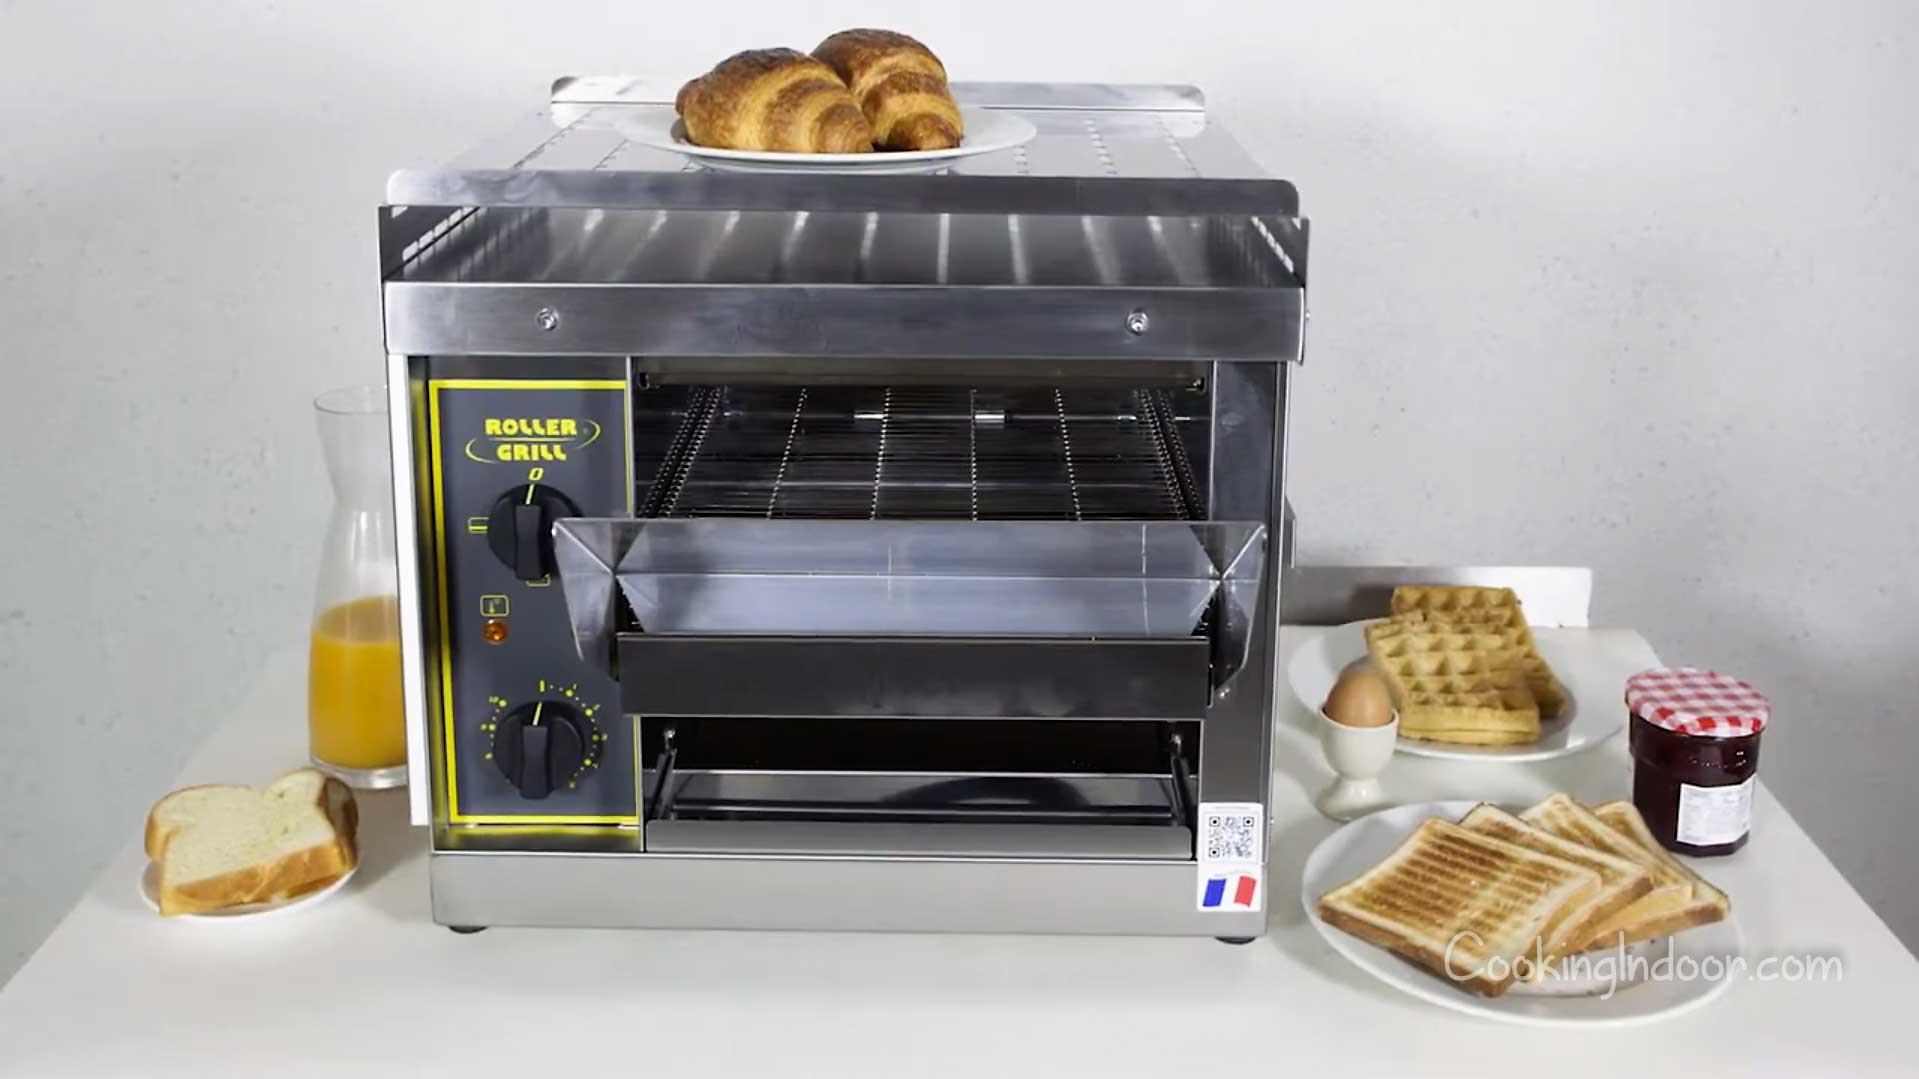 Best conveyor toaster oven